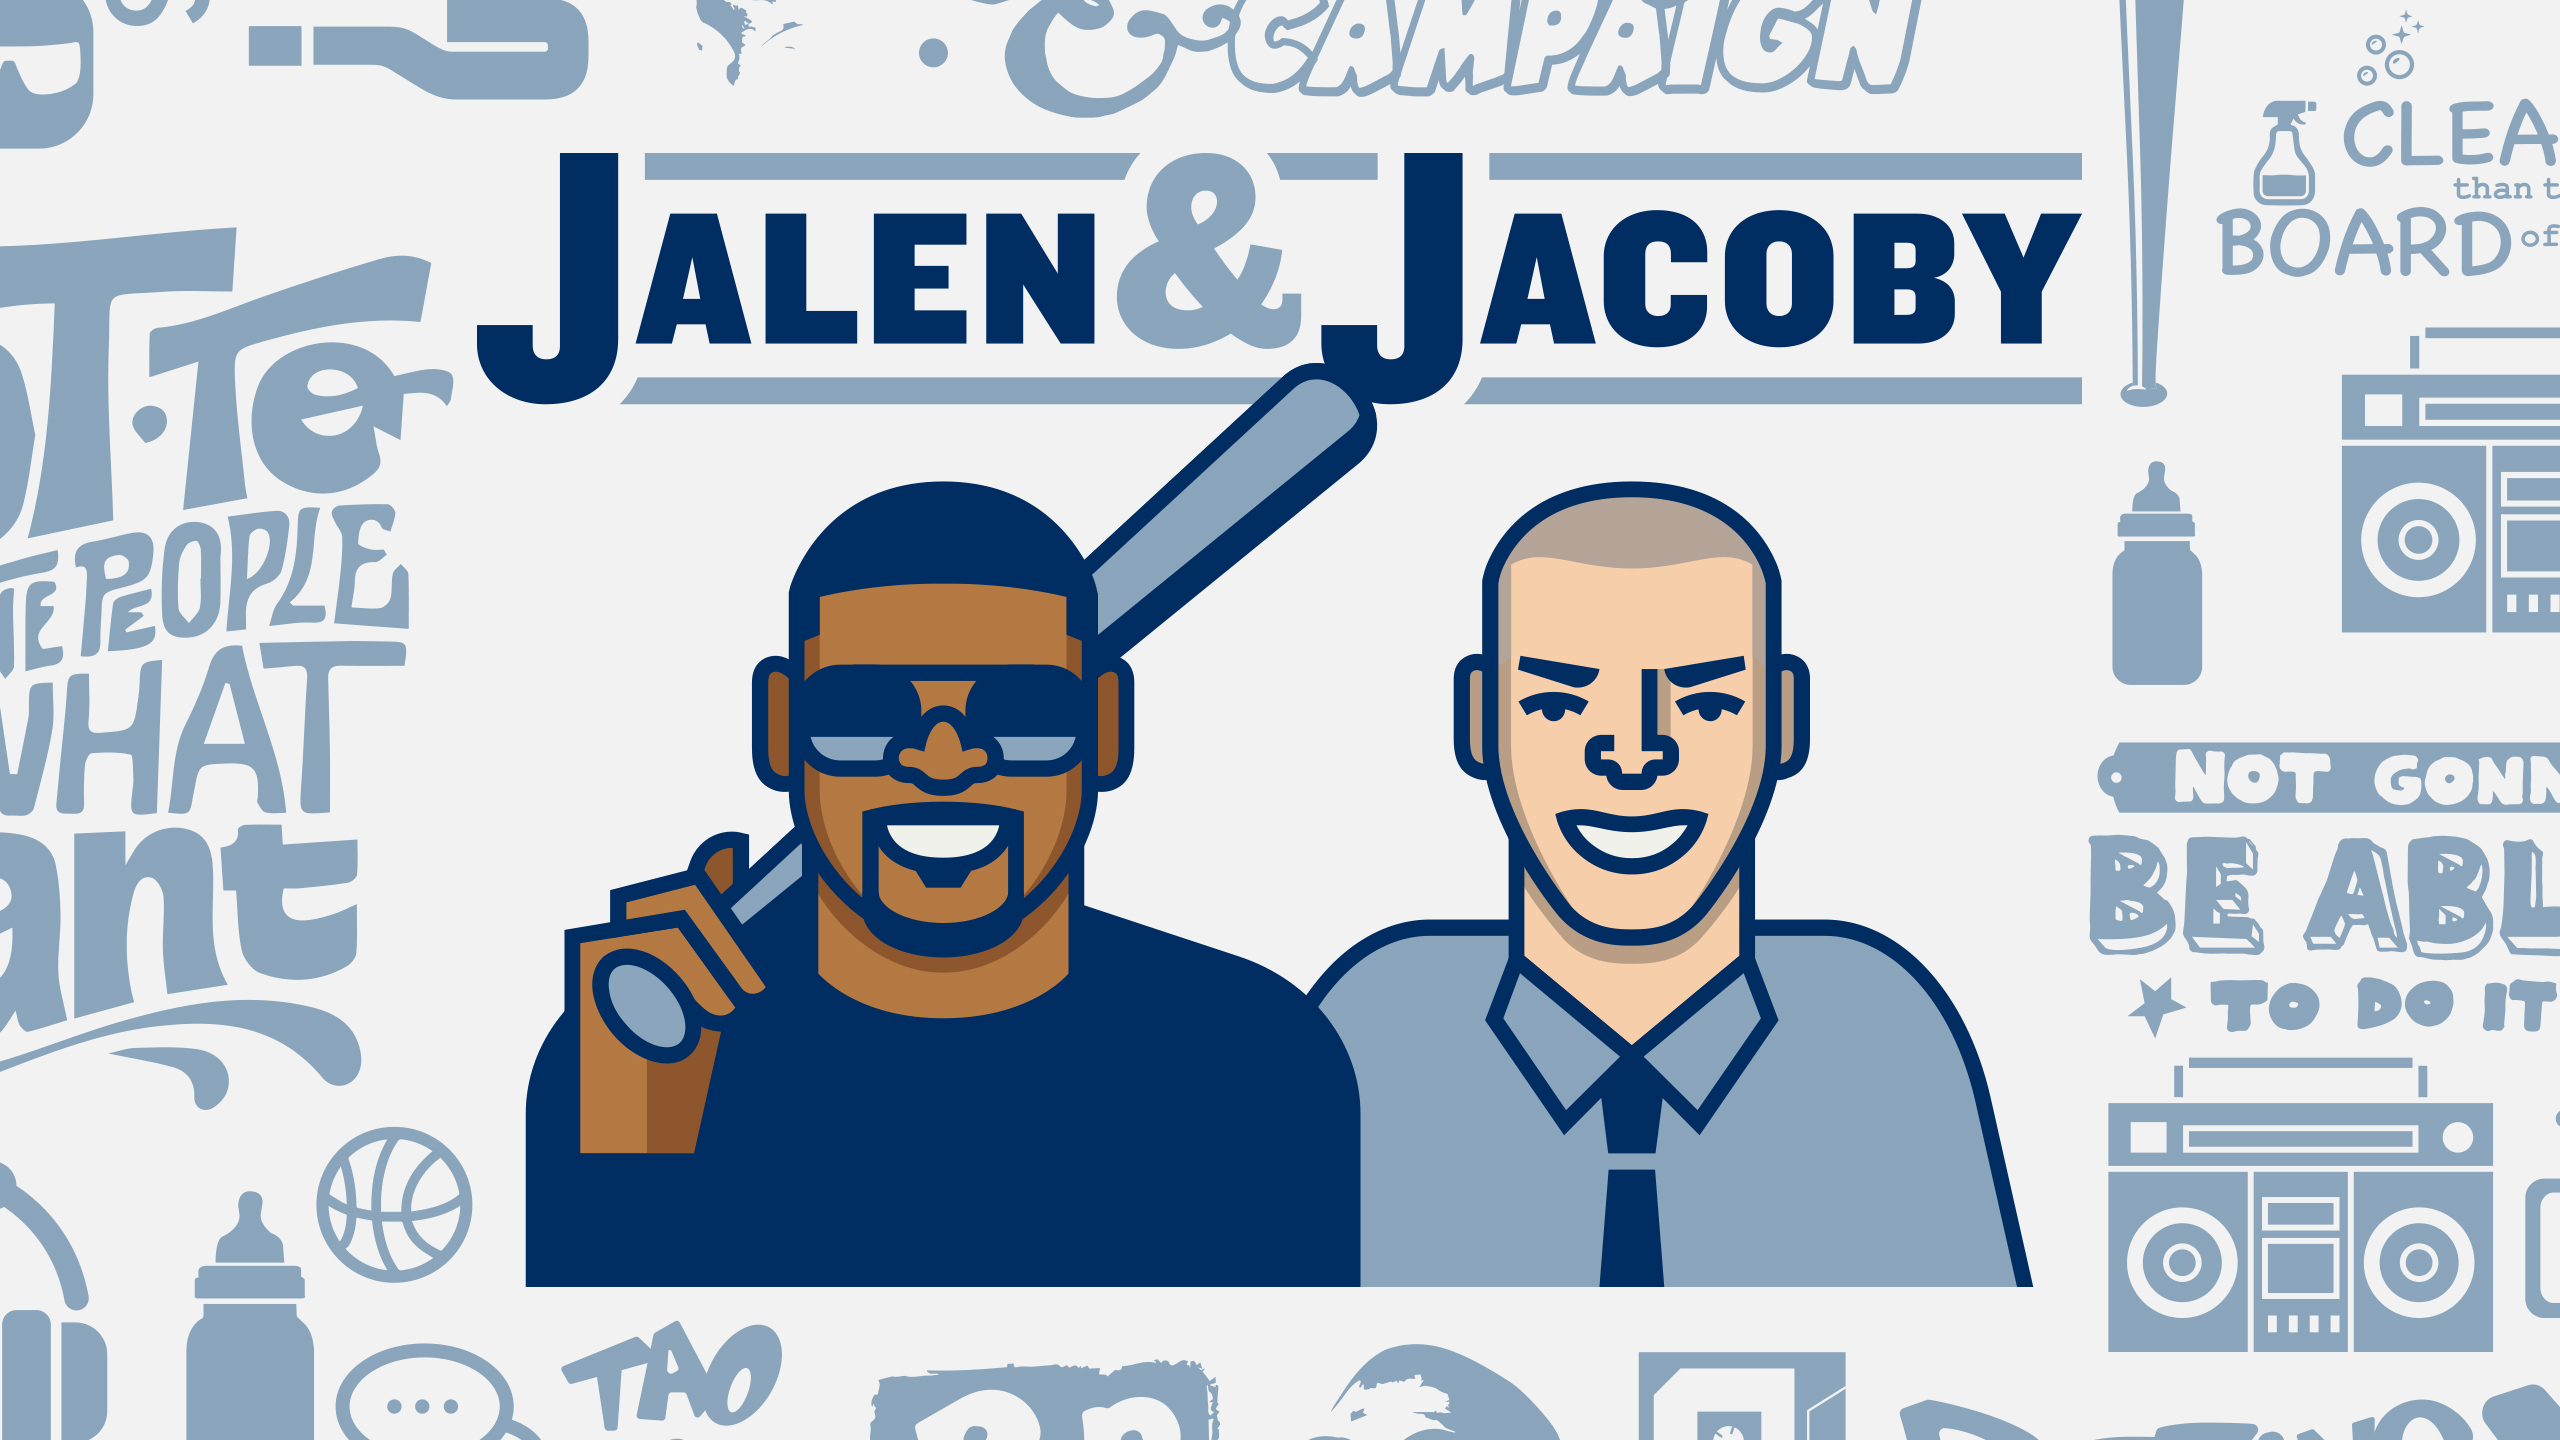 Fri, 10/19 - Jalen & Jacoby